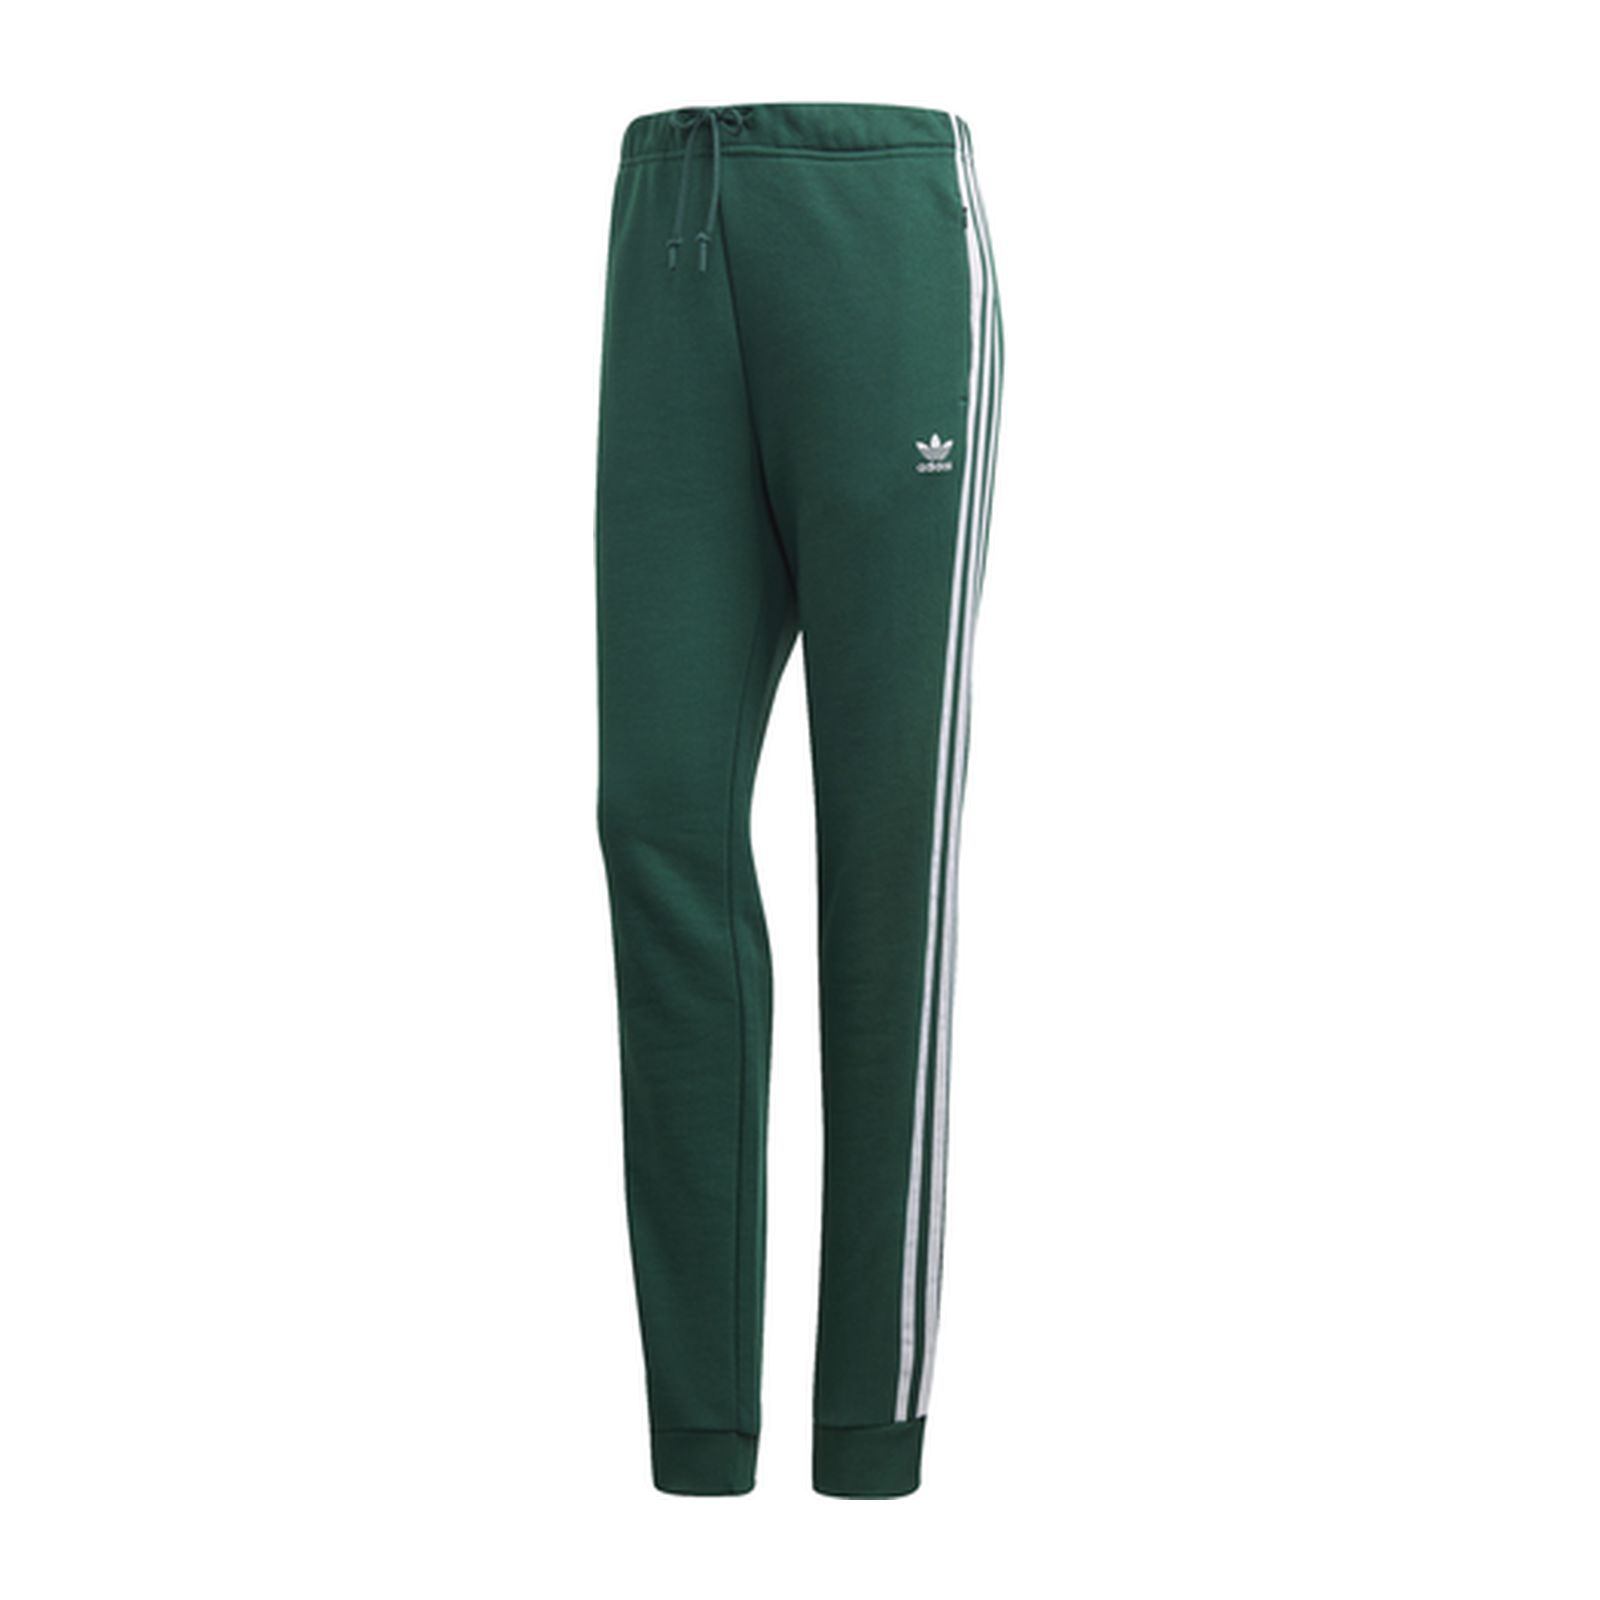 Joggingbroek Groen.Adidas Originals Joggingbroek Groen Brandalley